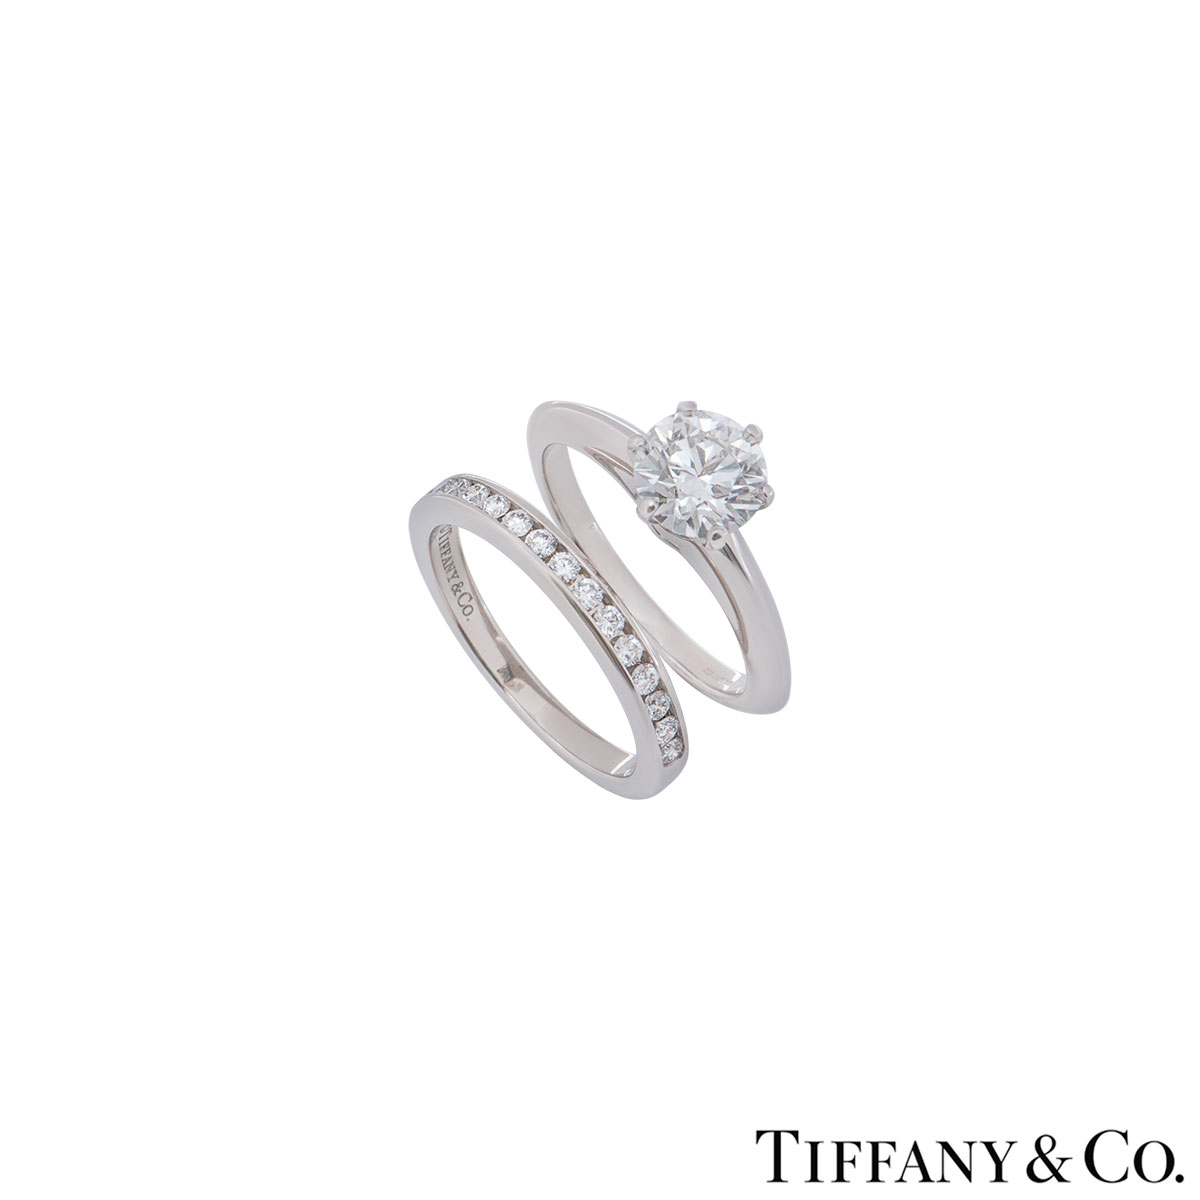 Tiffany & Co. Platinum Diamond Ring 1.17ct G/VVS1 XXX With Diamond Half Eternity Ring